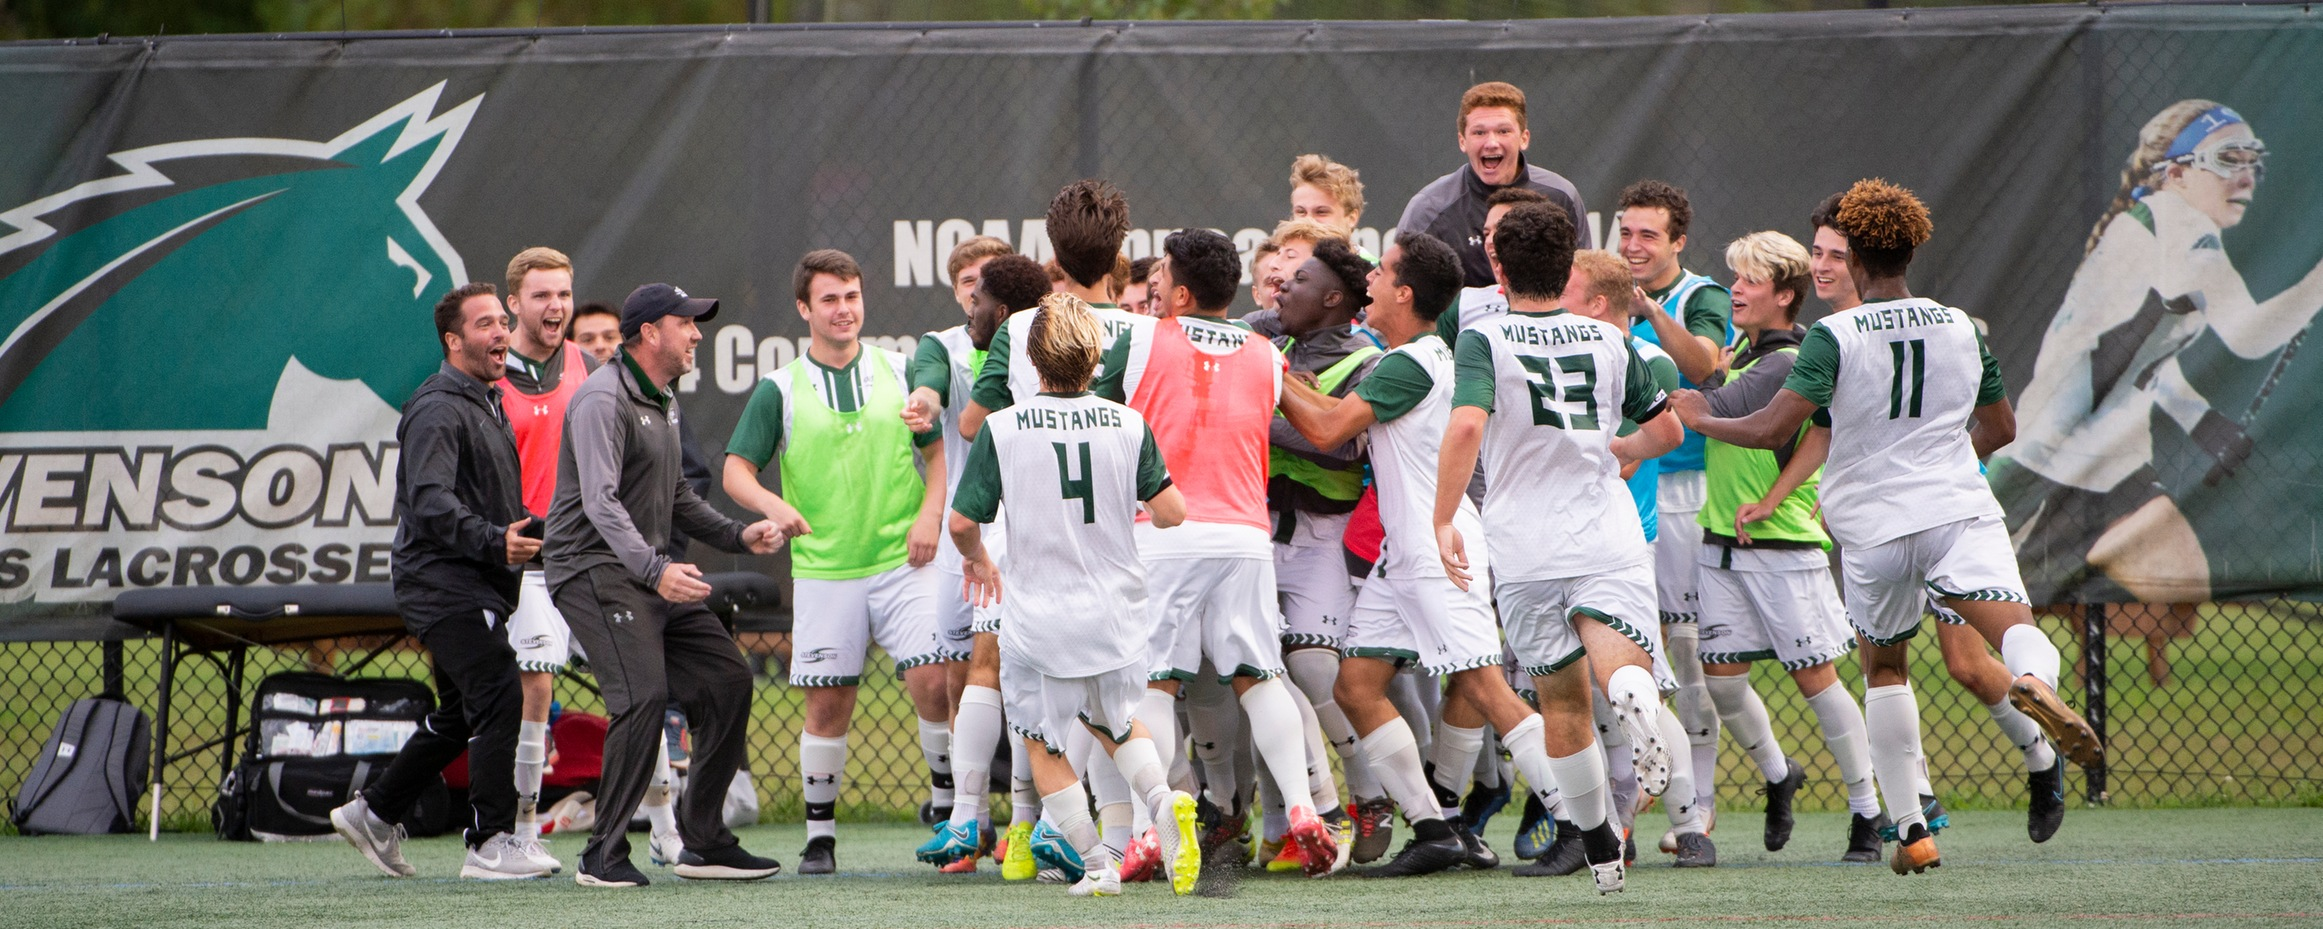 Men's Soccer to Host Spring ID Clinic on April 6